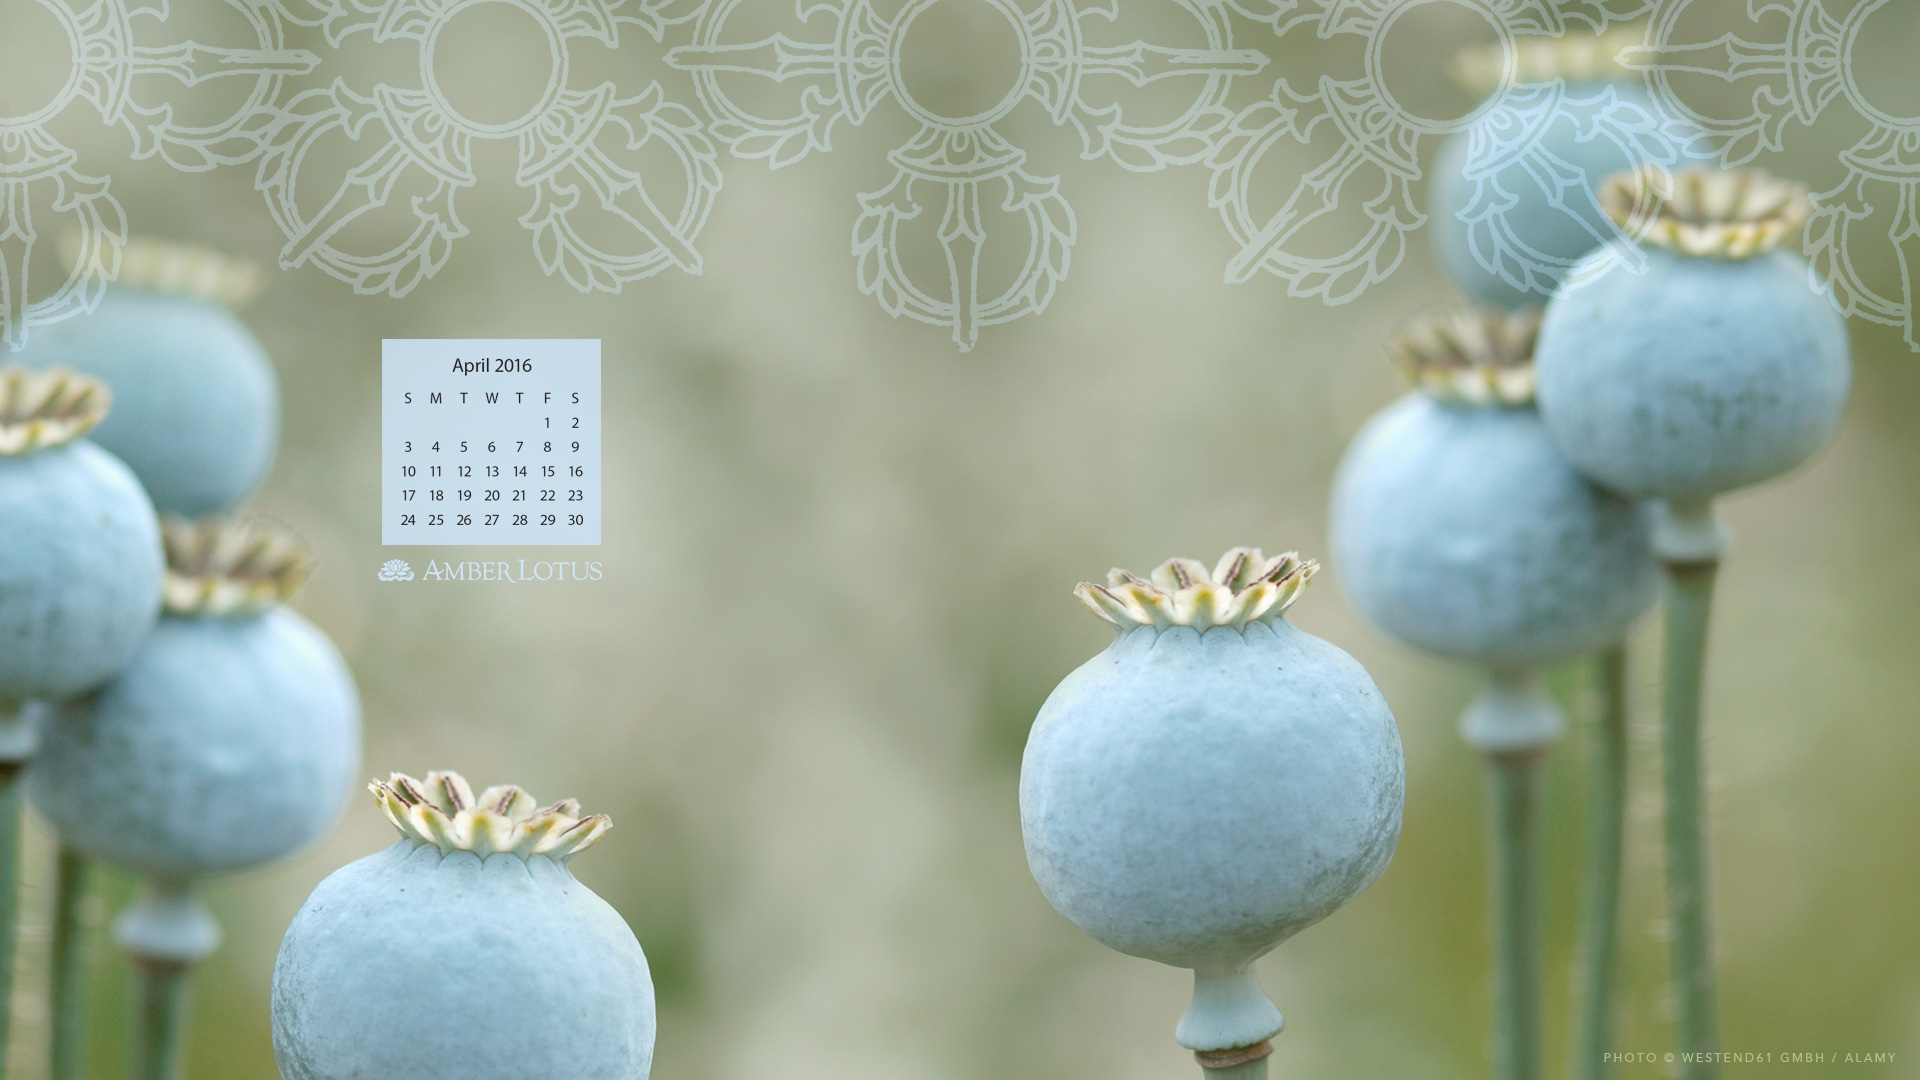 Desktop Calendar June 2016